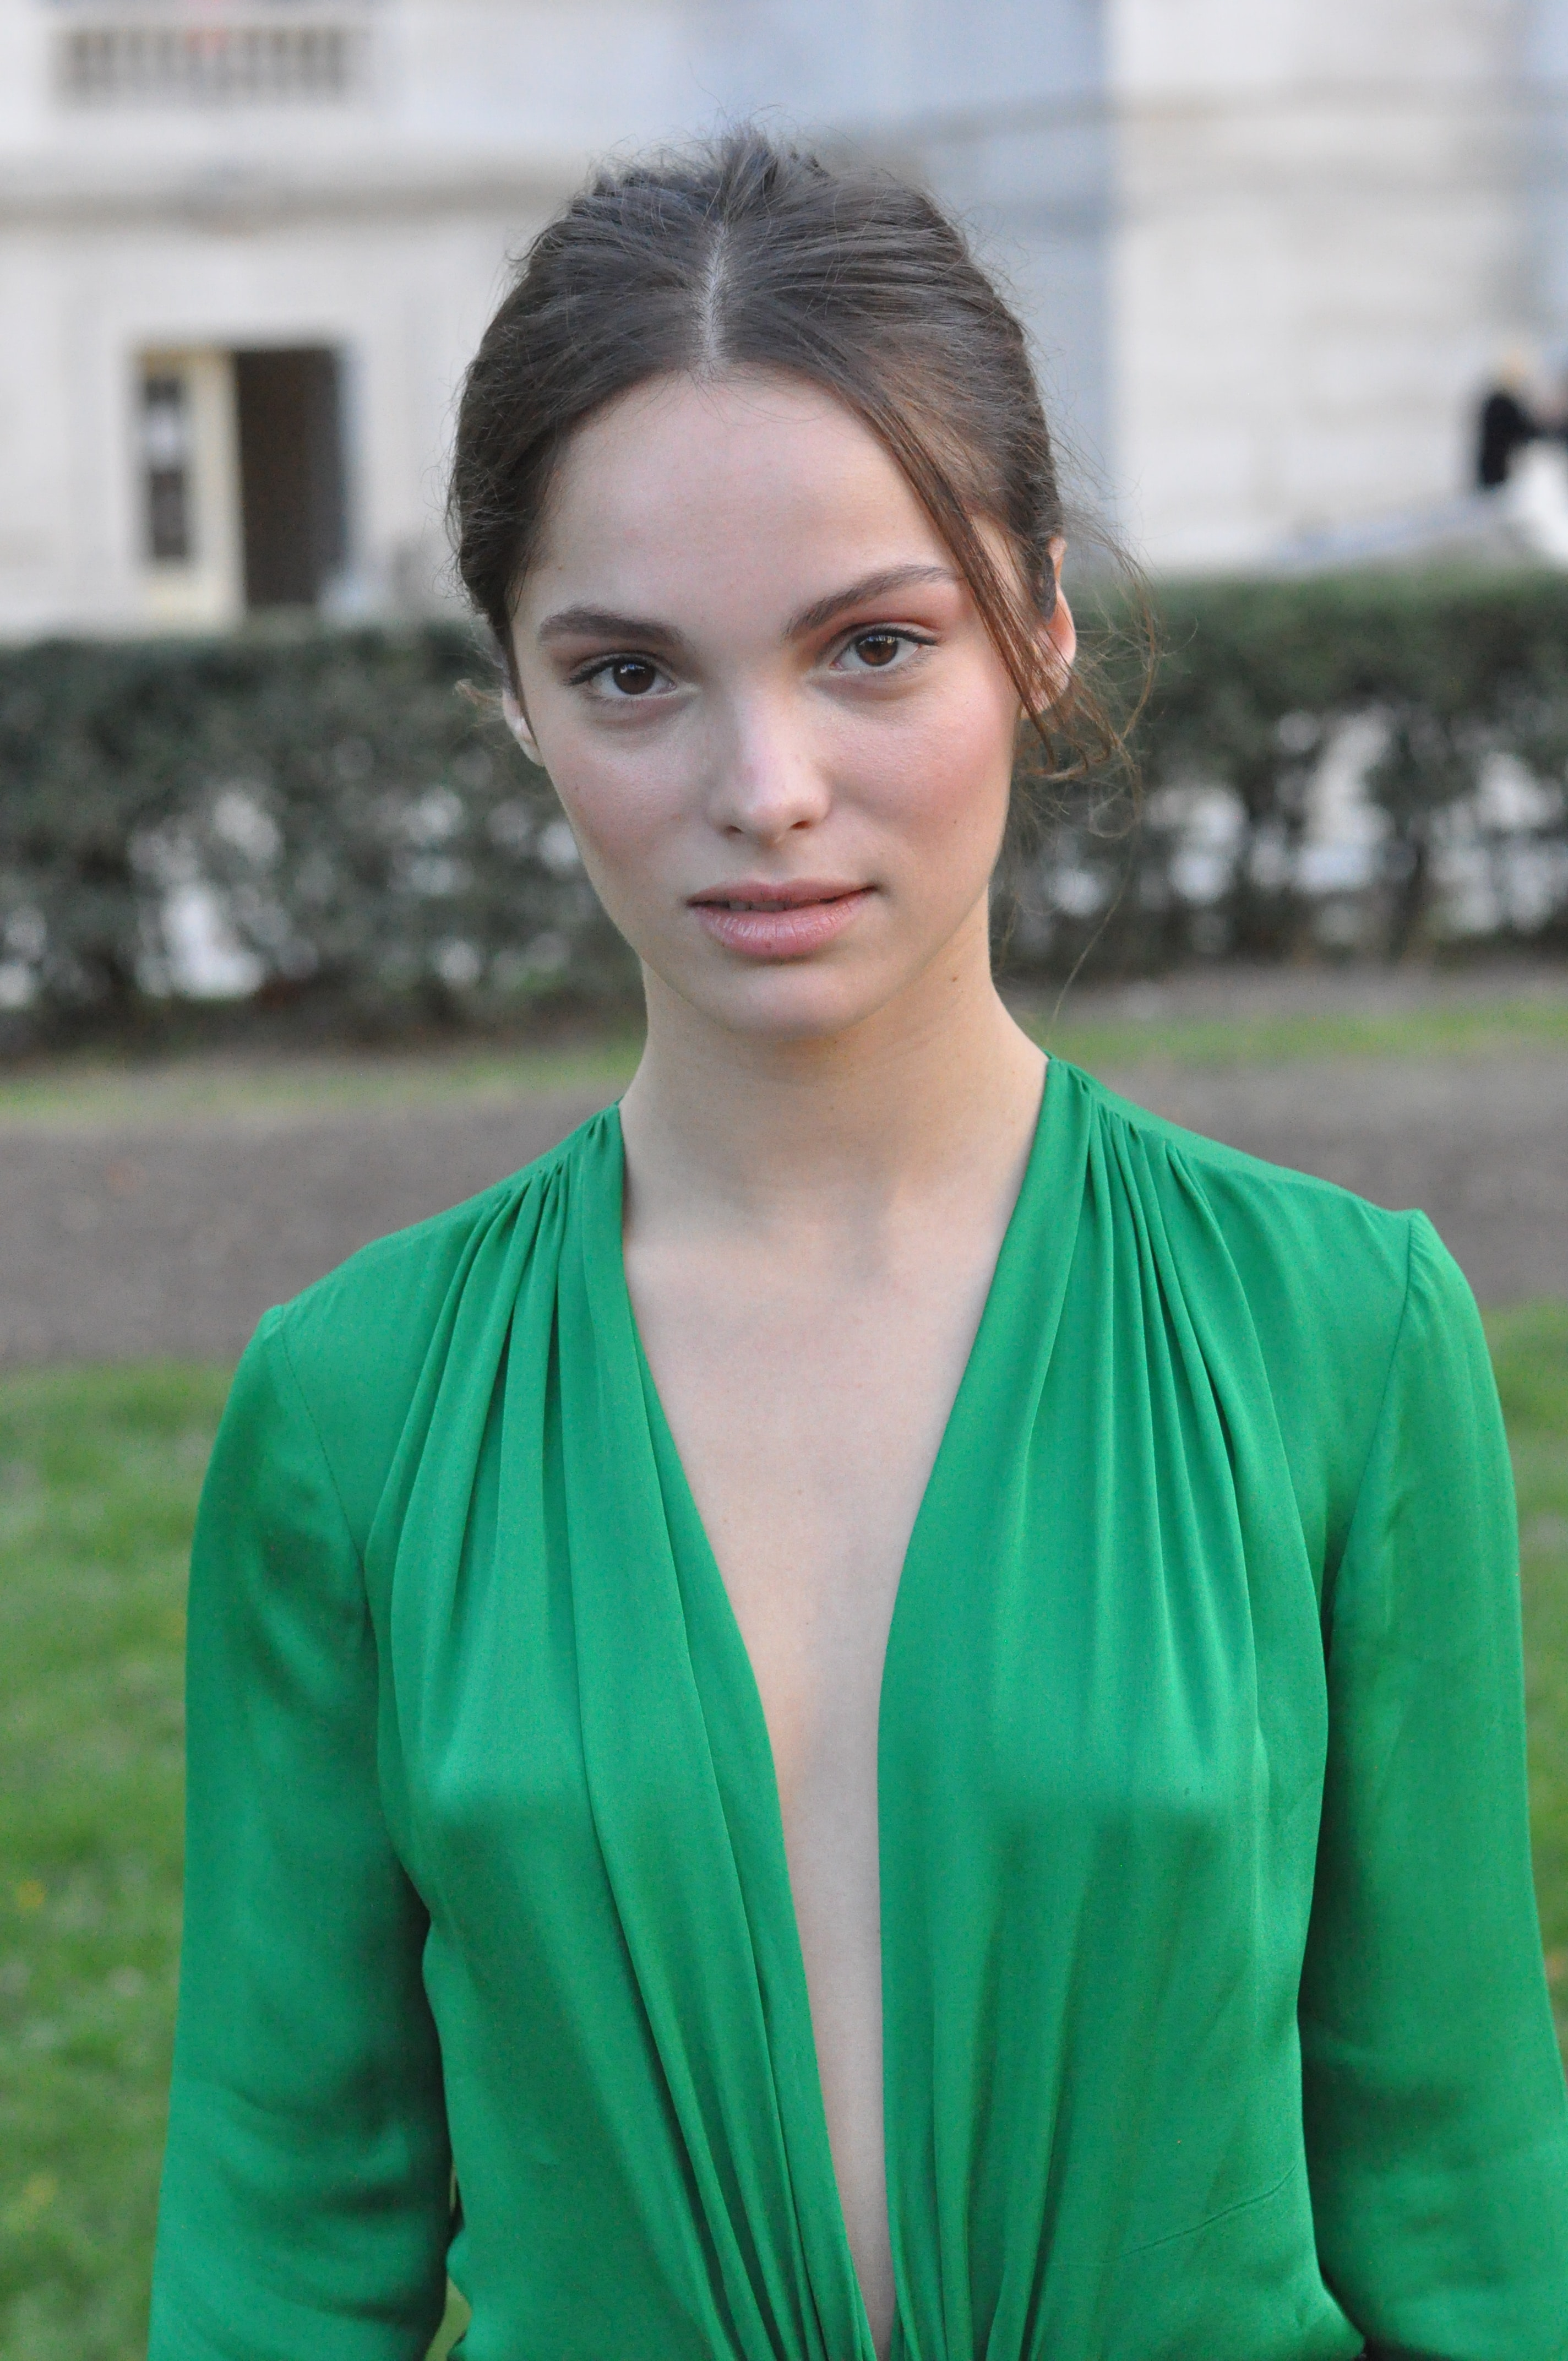 28+ Populer Pictures of Lola Le Lann - Swanty Gallery